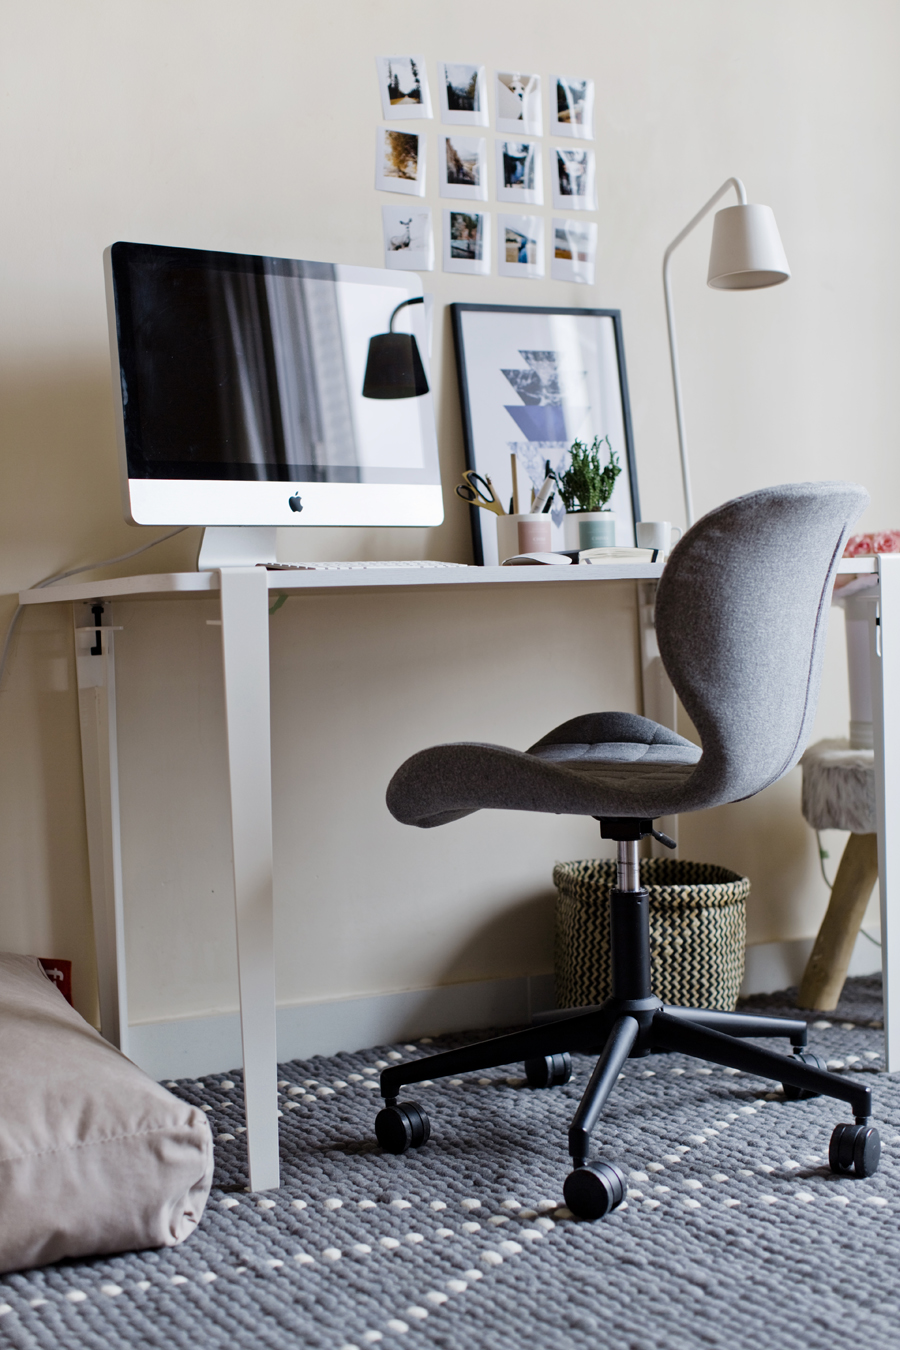 tiptoe_bureau_chaise_drawer_2